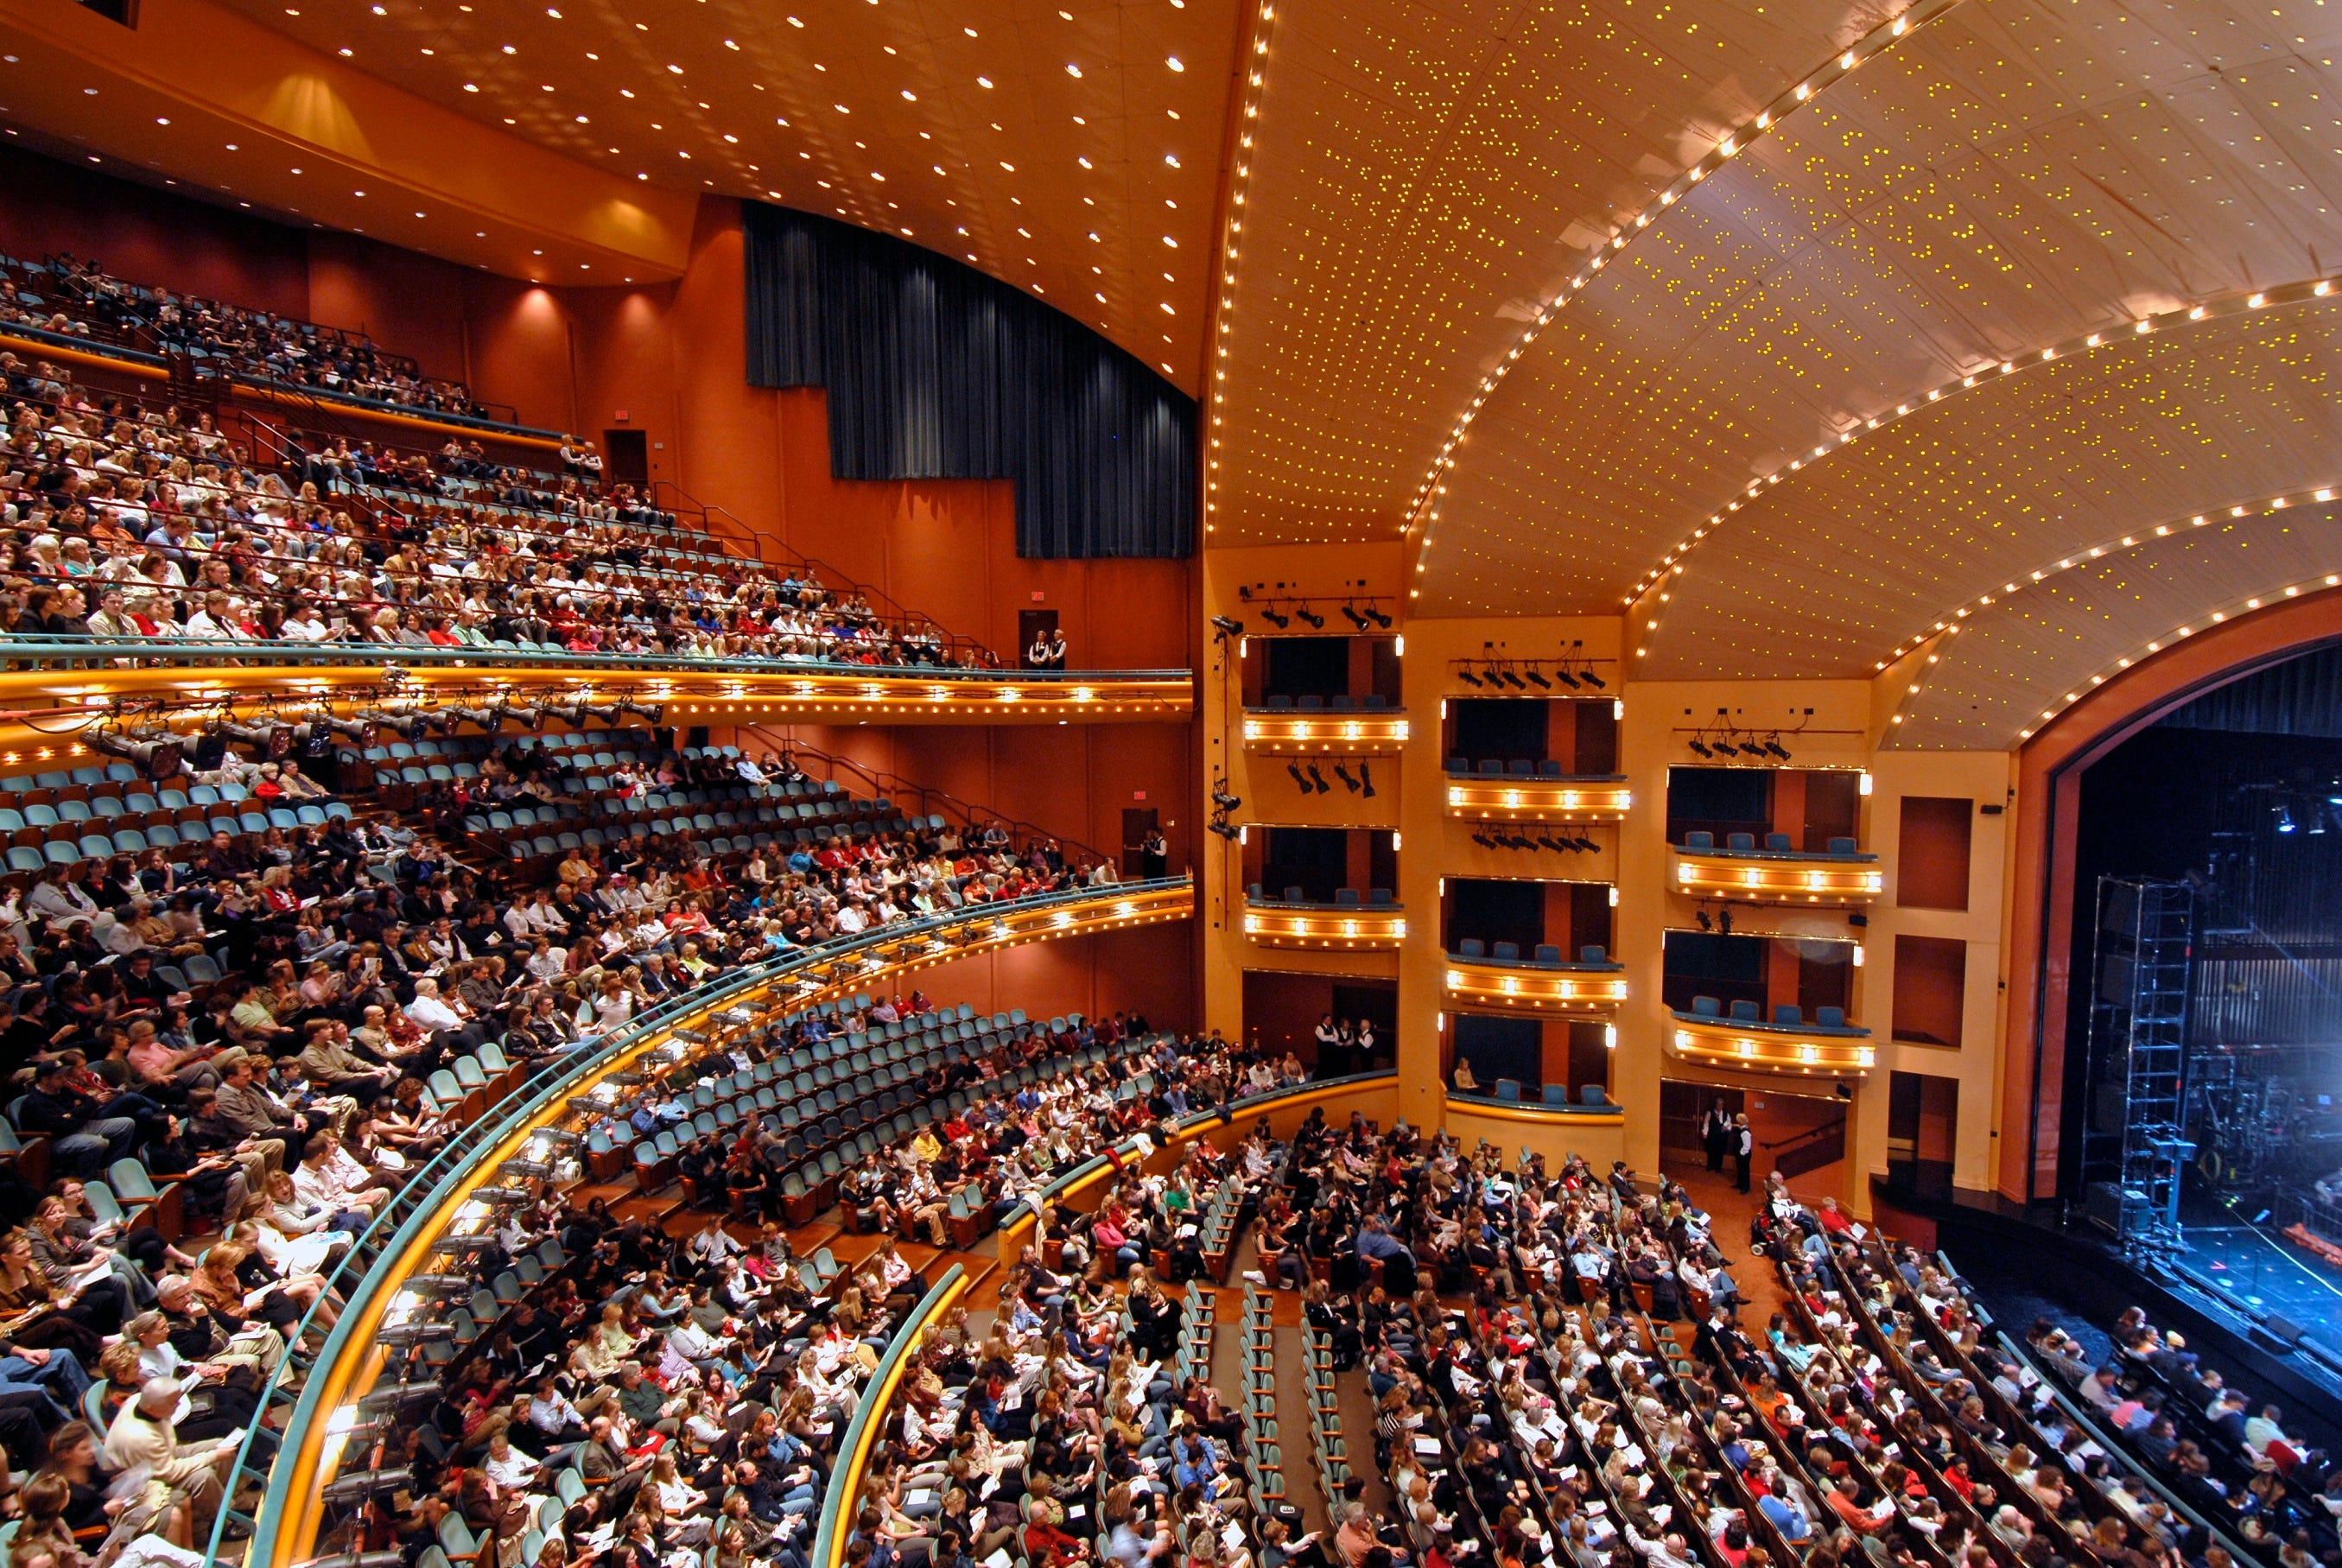 Aronoff Center, Music Hall to require vaccinations or negative COVID-19 tests for entry